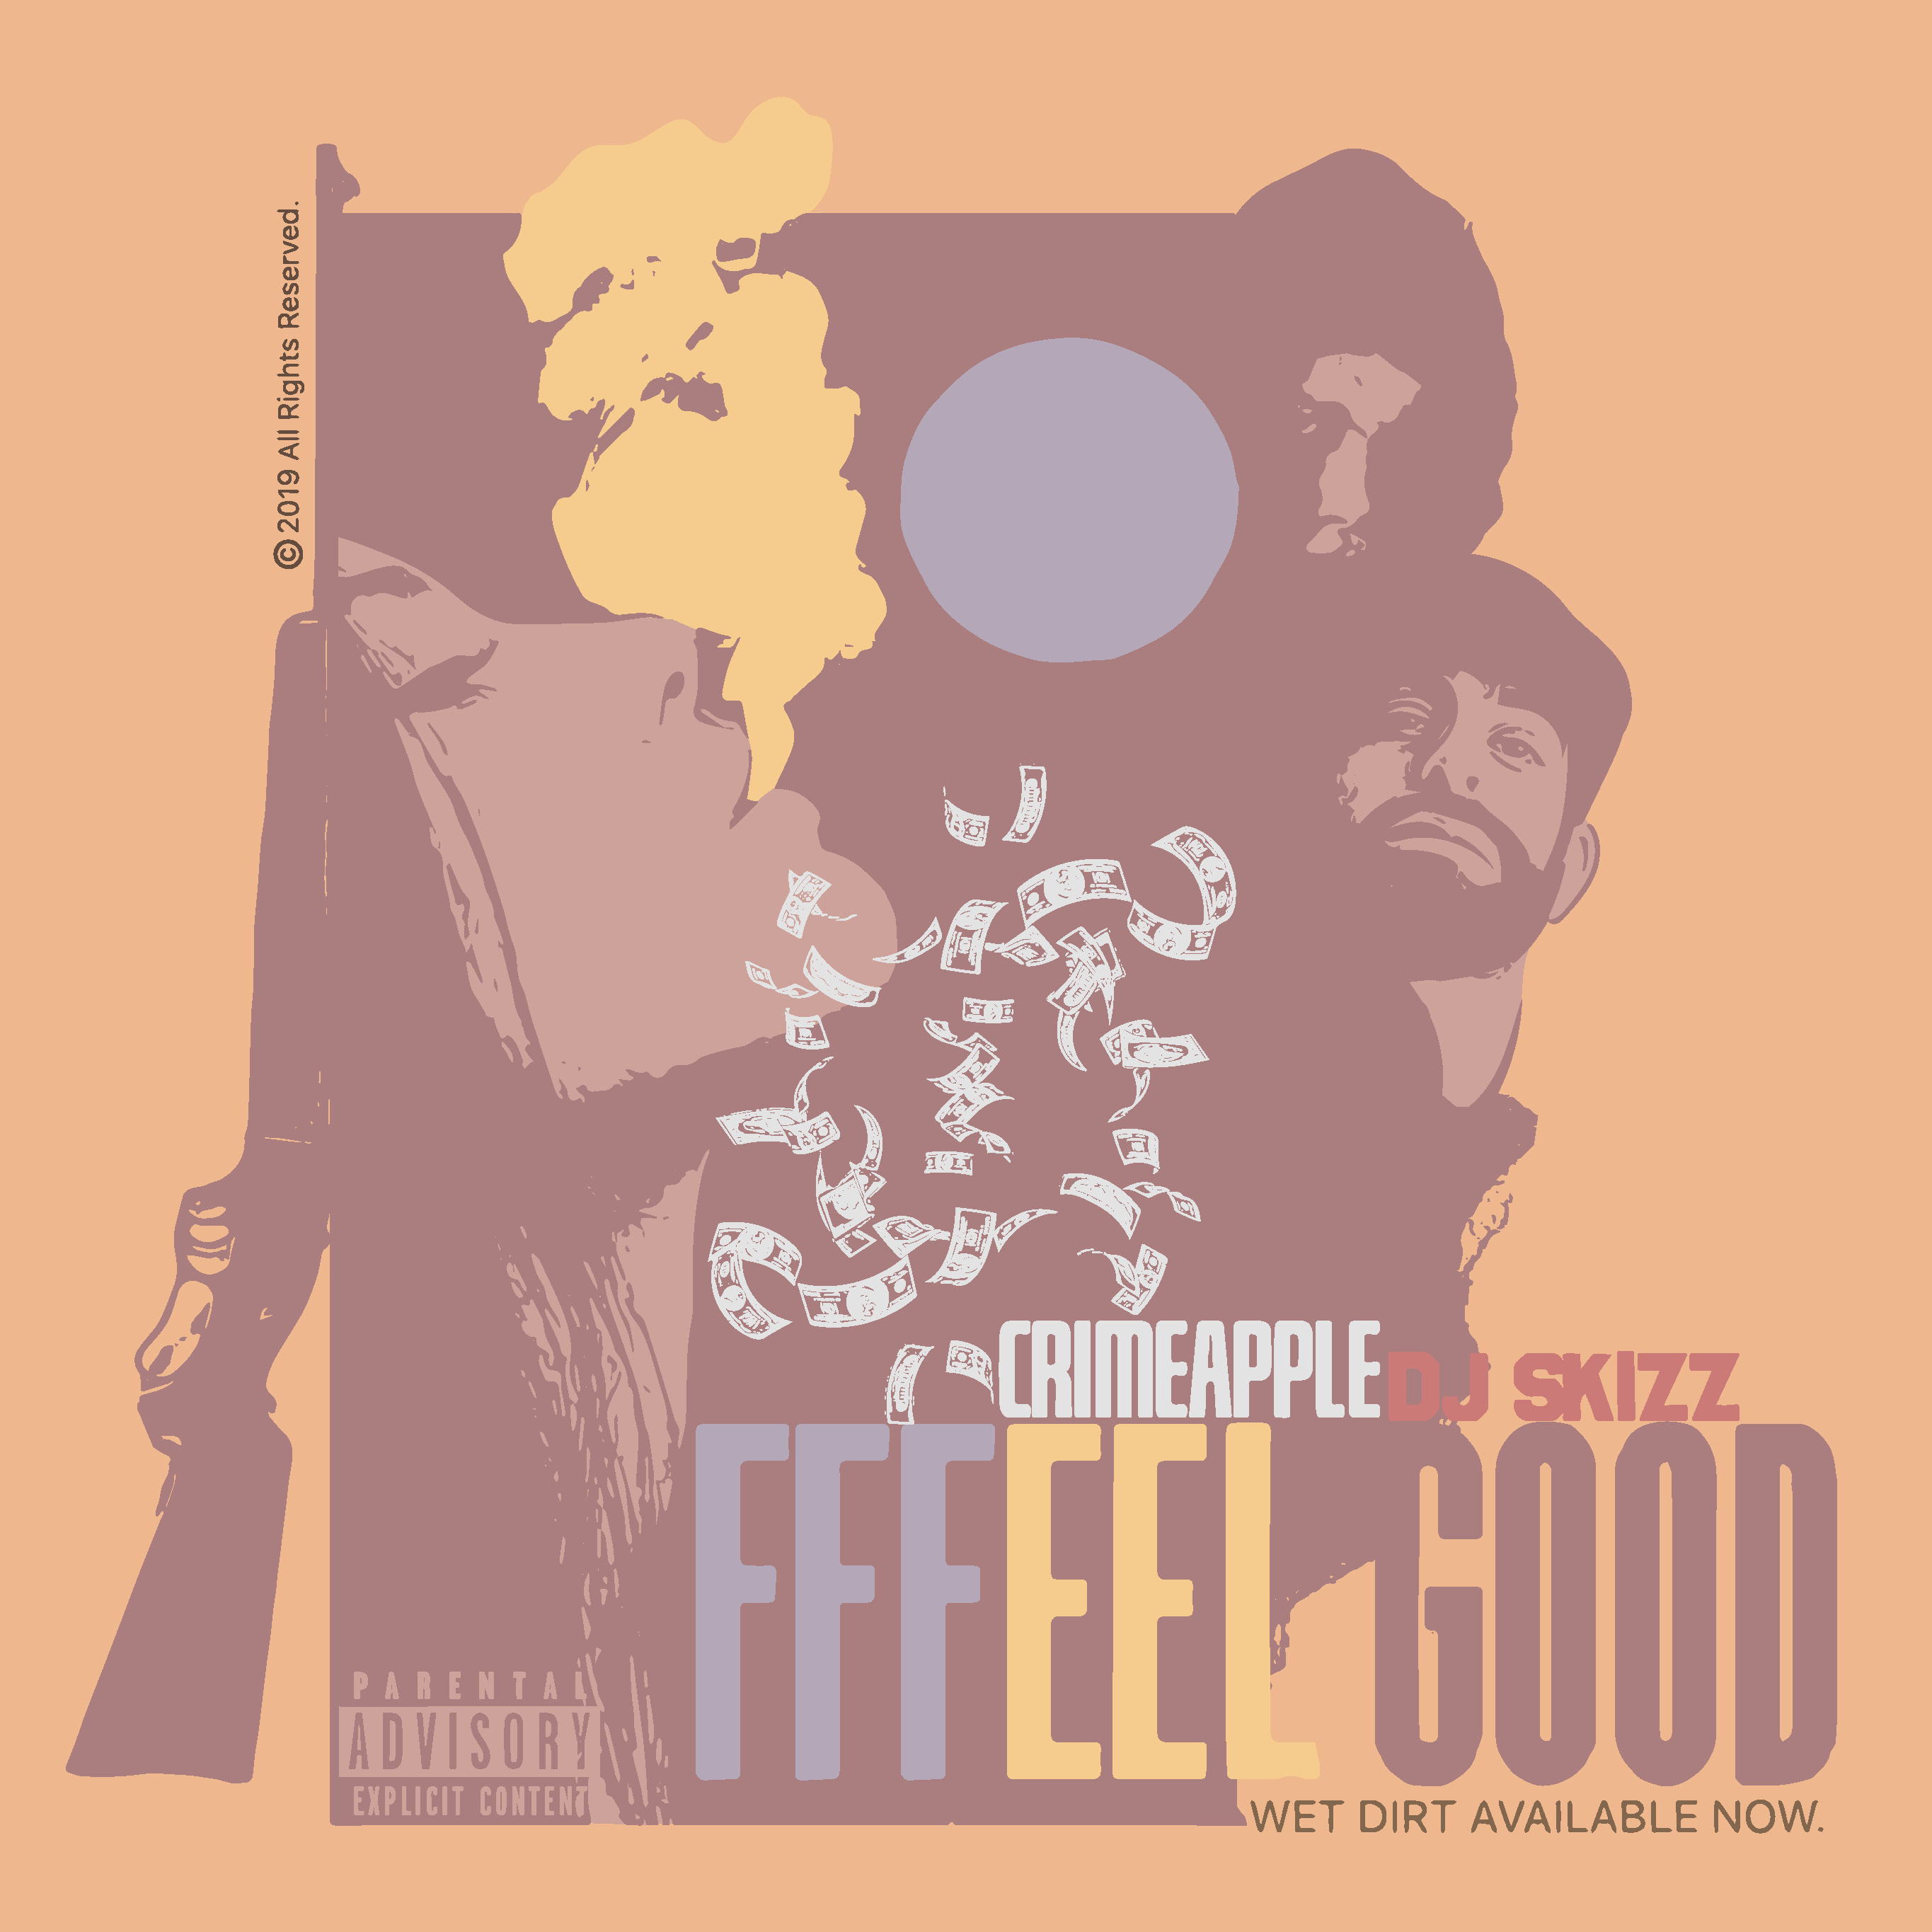 Crimeapple x DJ Skizz - FFFeel Good [audio]